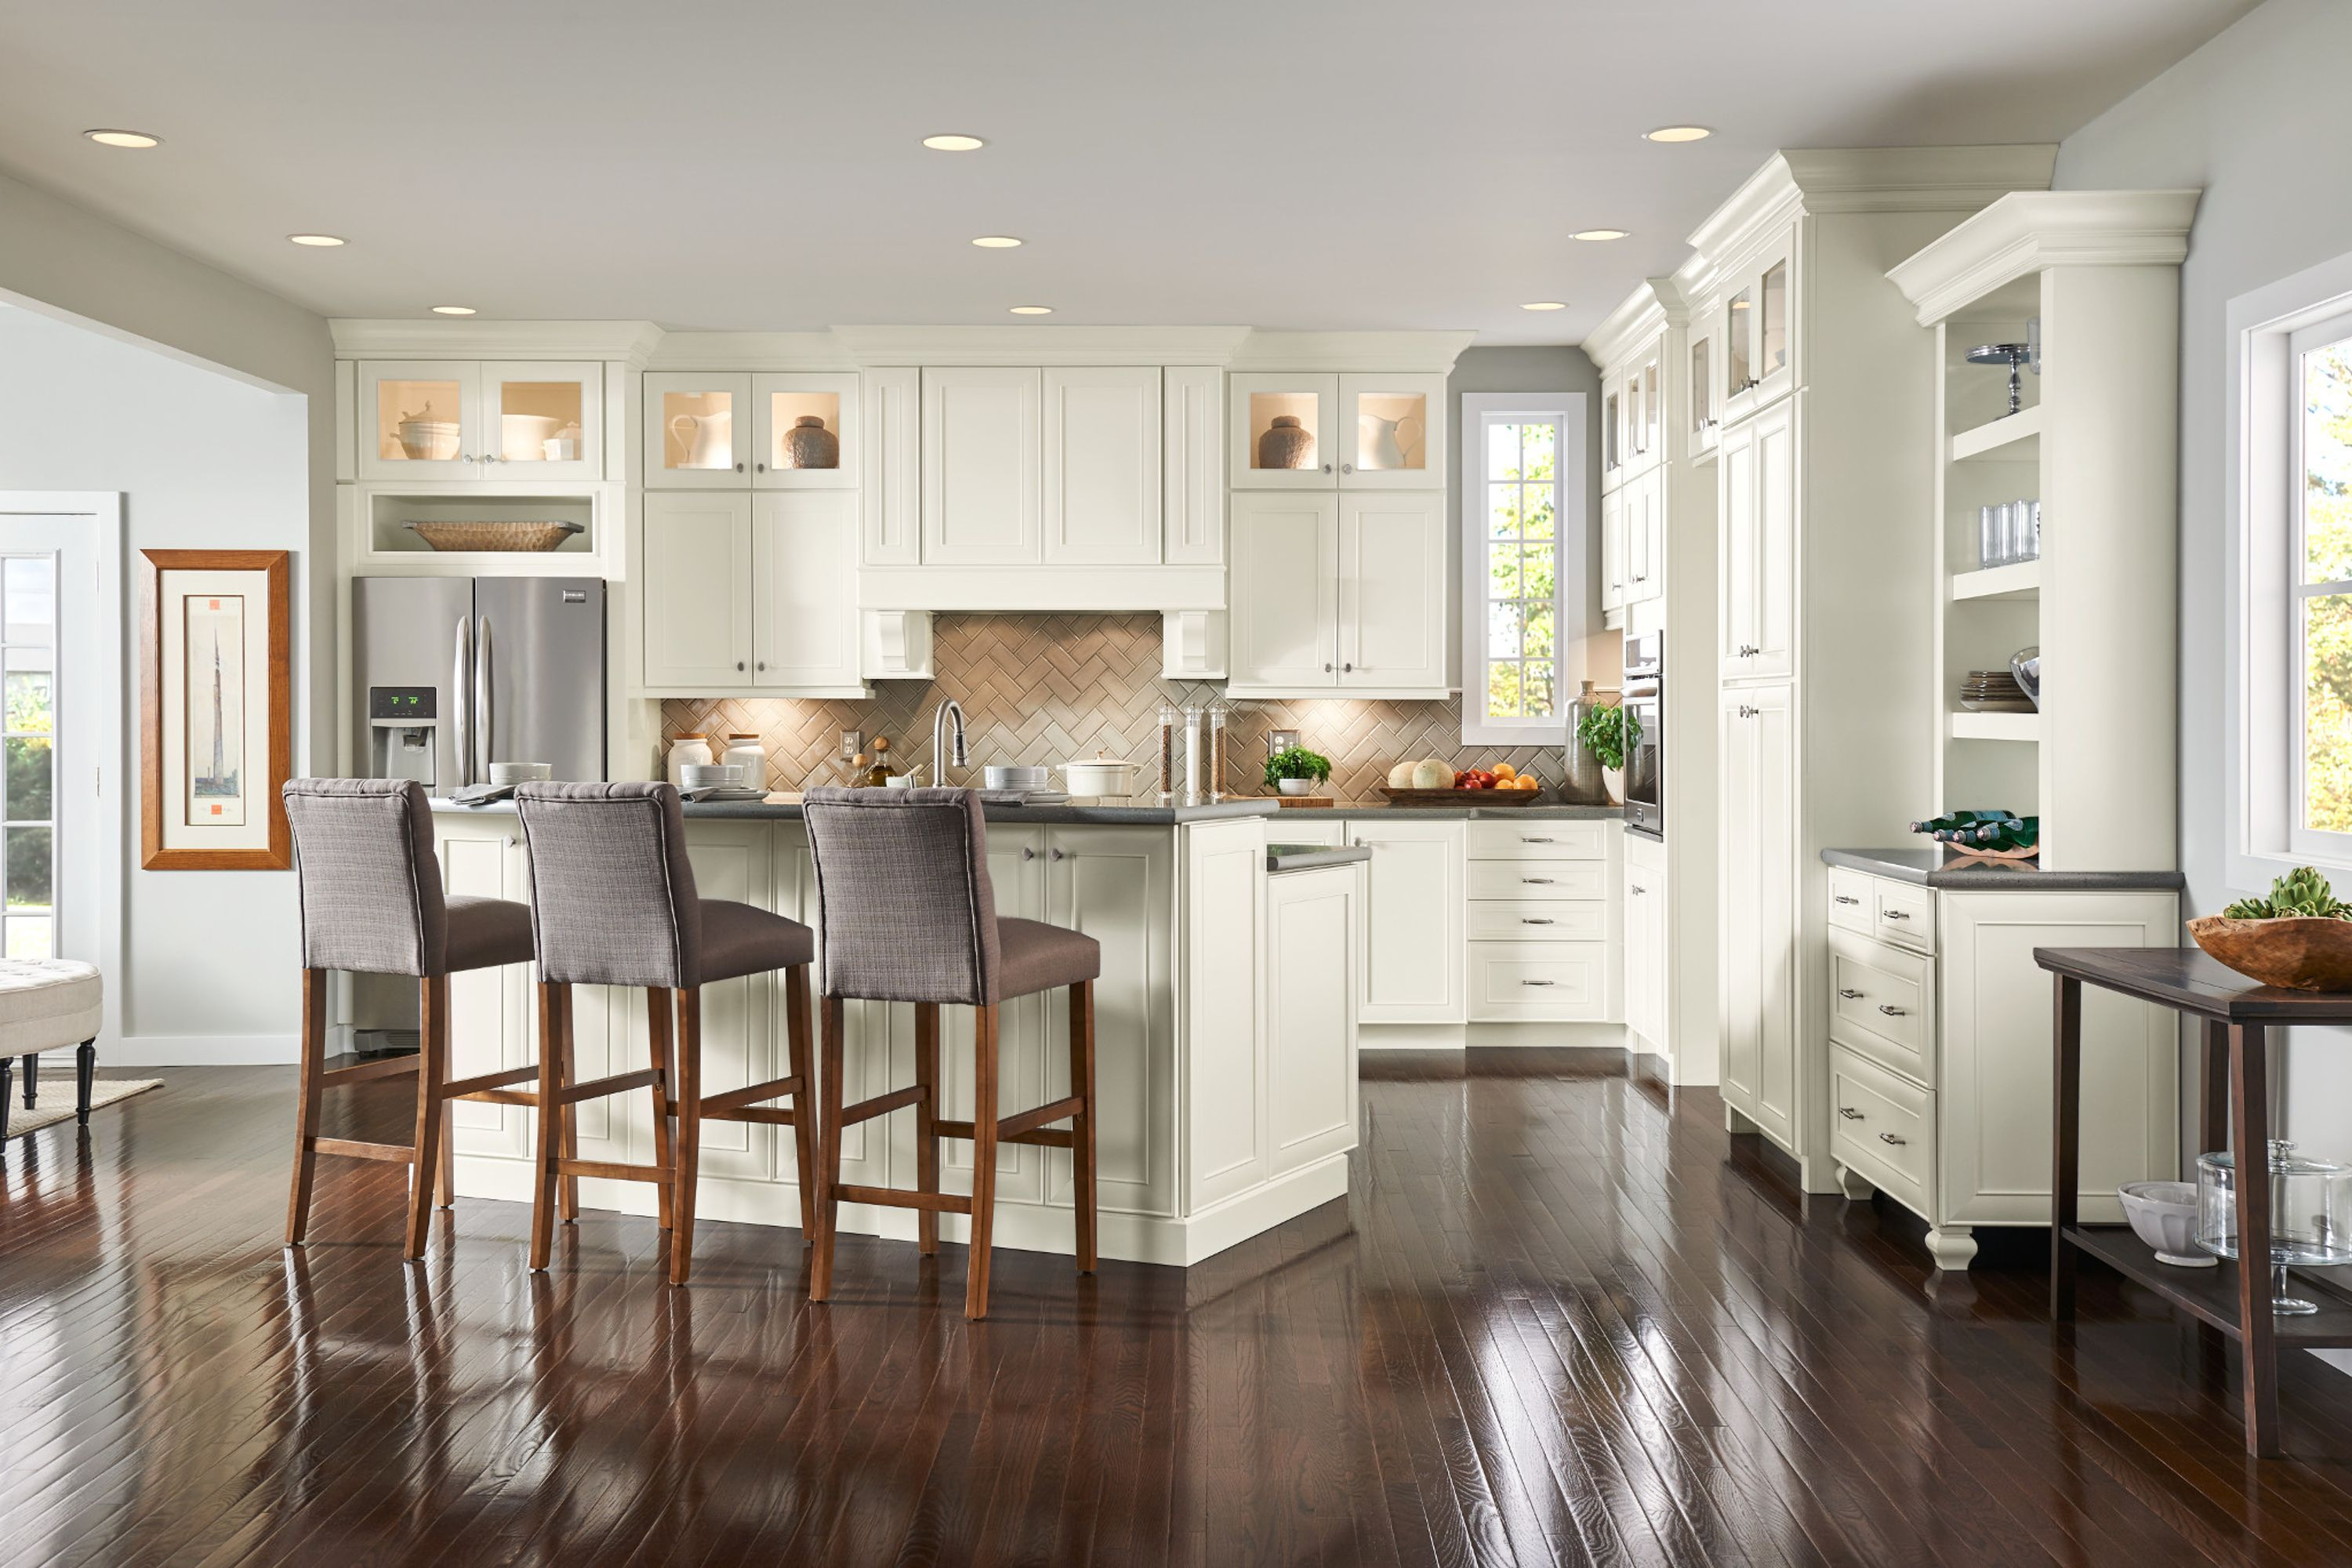 Atherton Collection American Woodmark Kitchen remodel